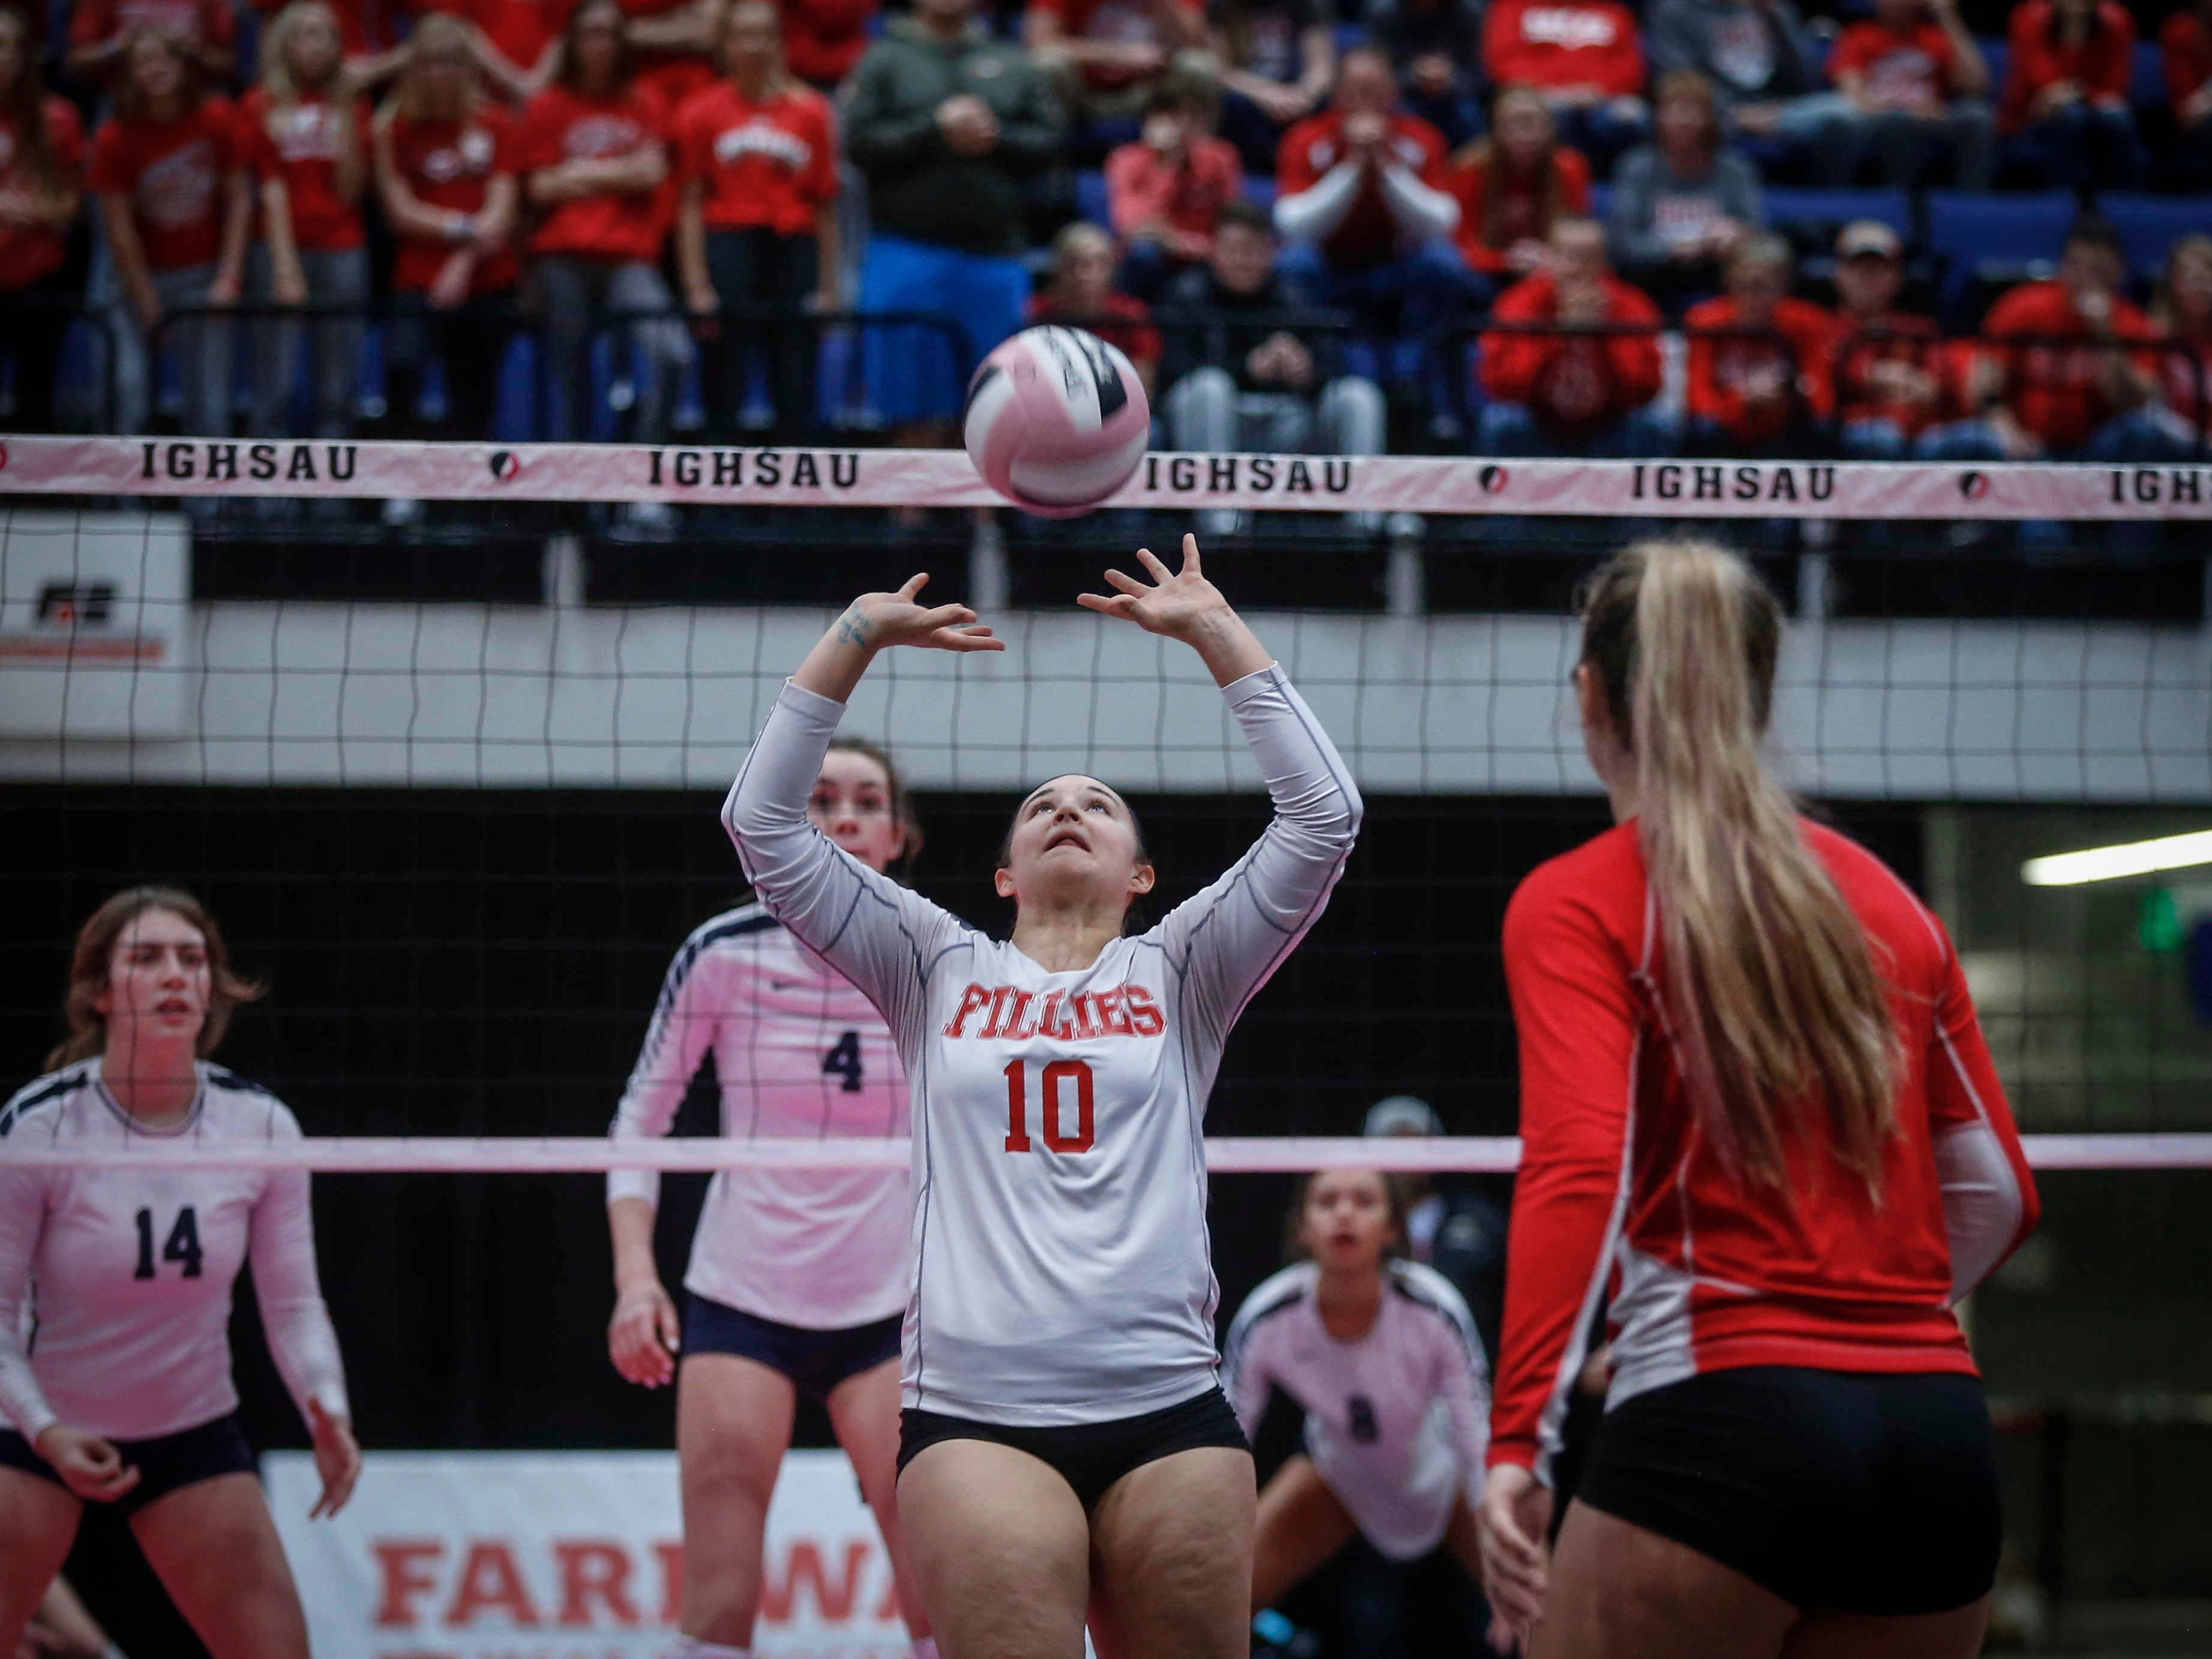 Dallas Center-Grimes junior Kamryn O'Brien sets the ball up against Cedar Rapids Xavier in Class 4A during the 2018 Iowa High School state volleyball tournament on Thursday, Nov. 8, 2018, in Cedar Rapids.